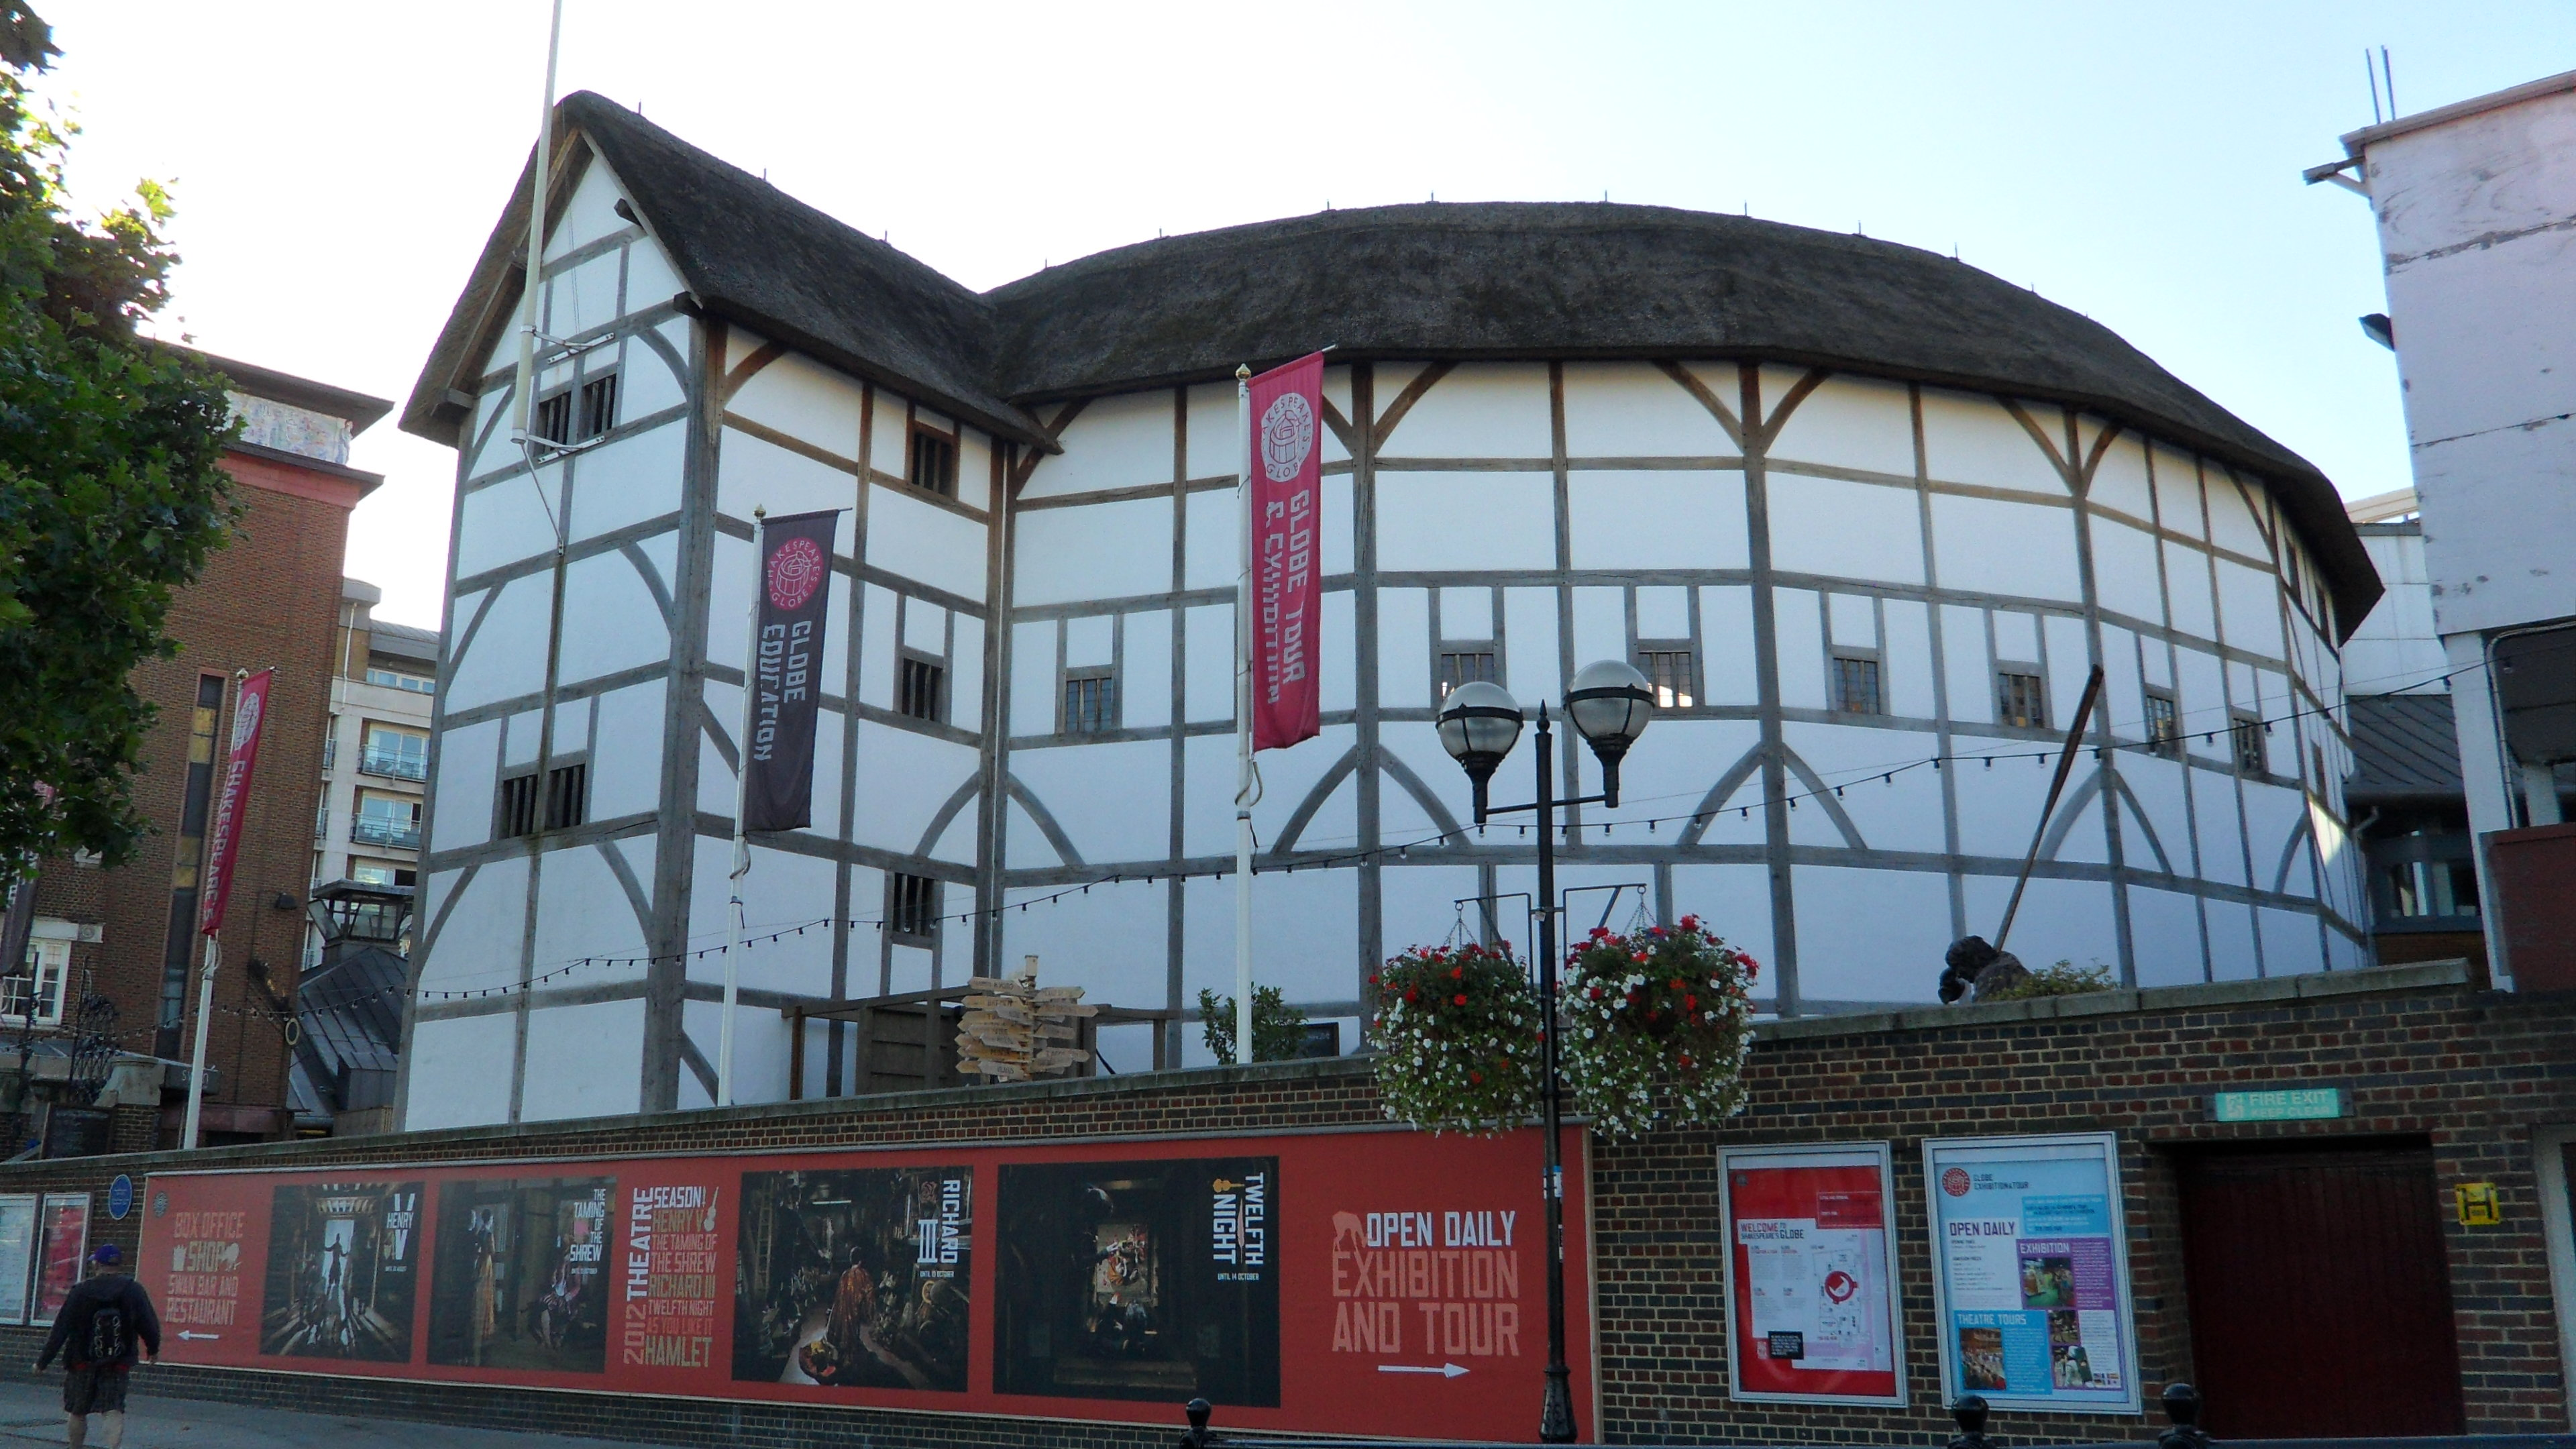 globe theatre research essay The globe theatre was an early english theater in london this theater has been renown all over the world because the works of playwright william shakespeare were originally performed there it is also well know because of the strange way it was built, destroyed and recreated throughout the years.